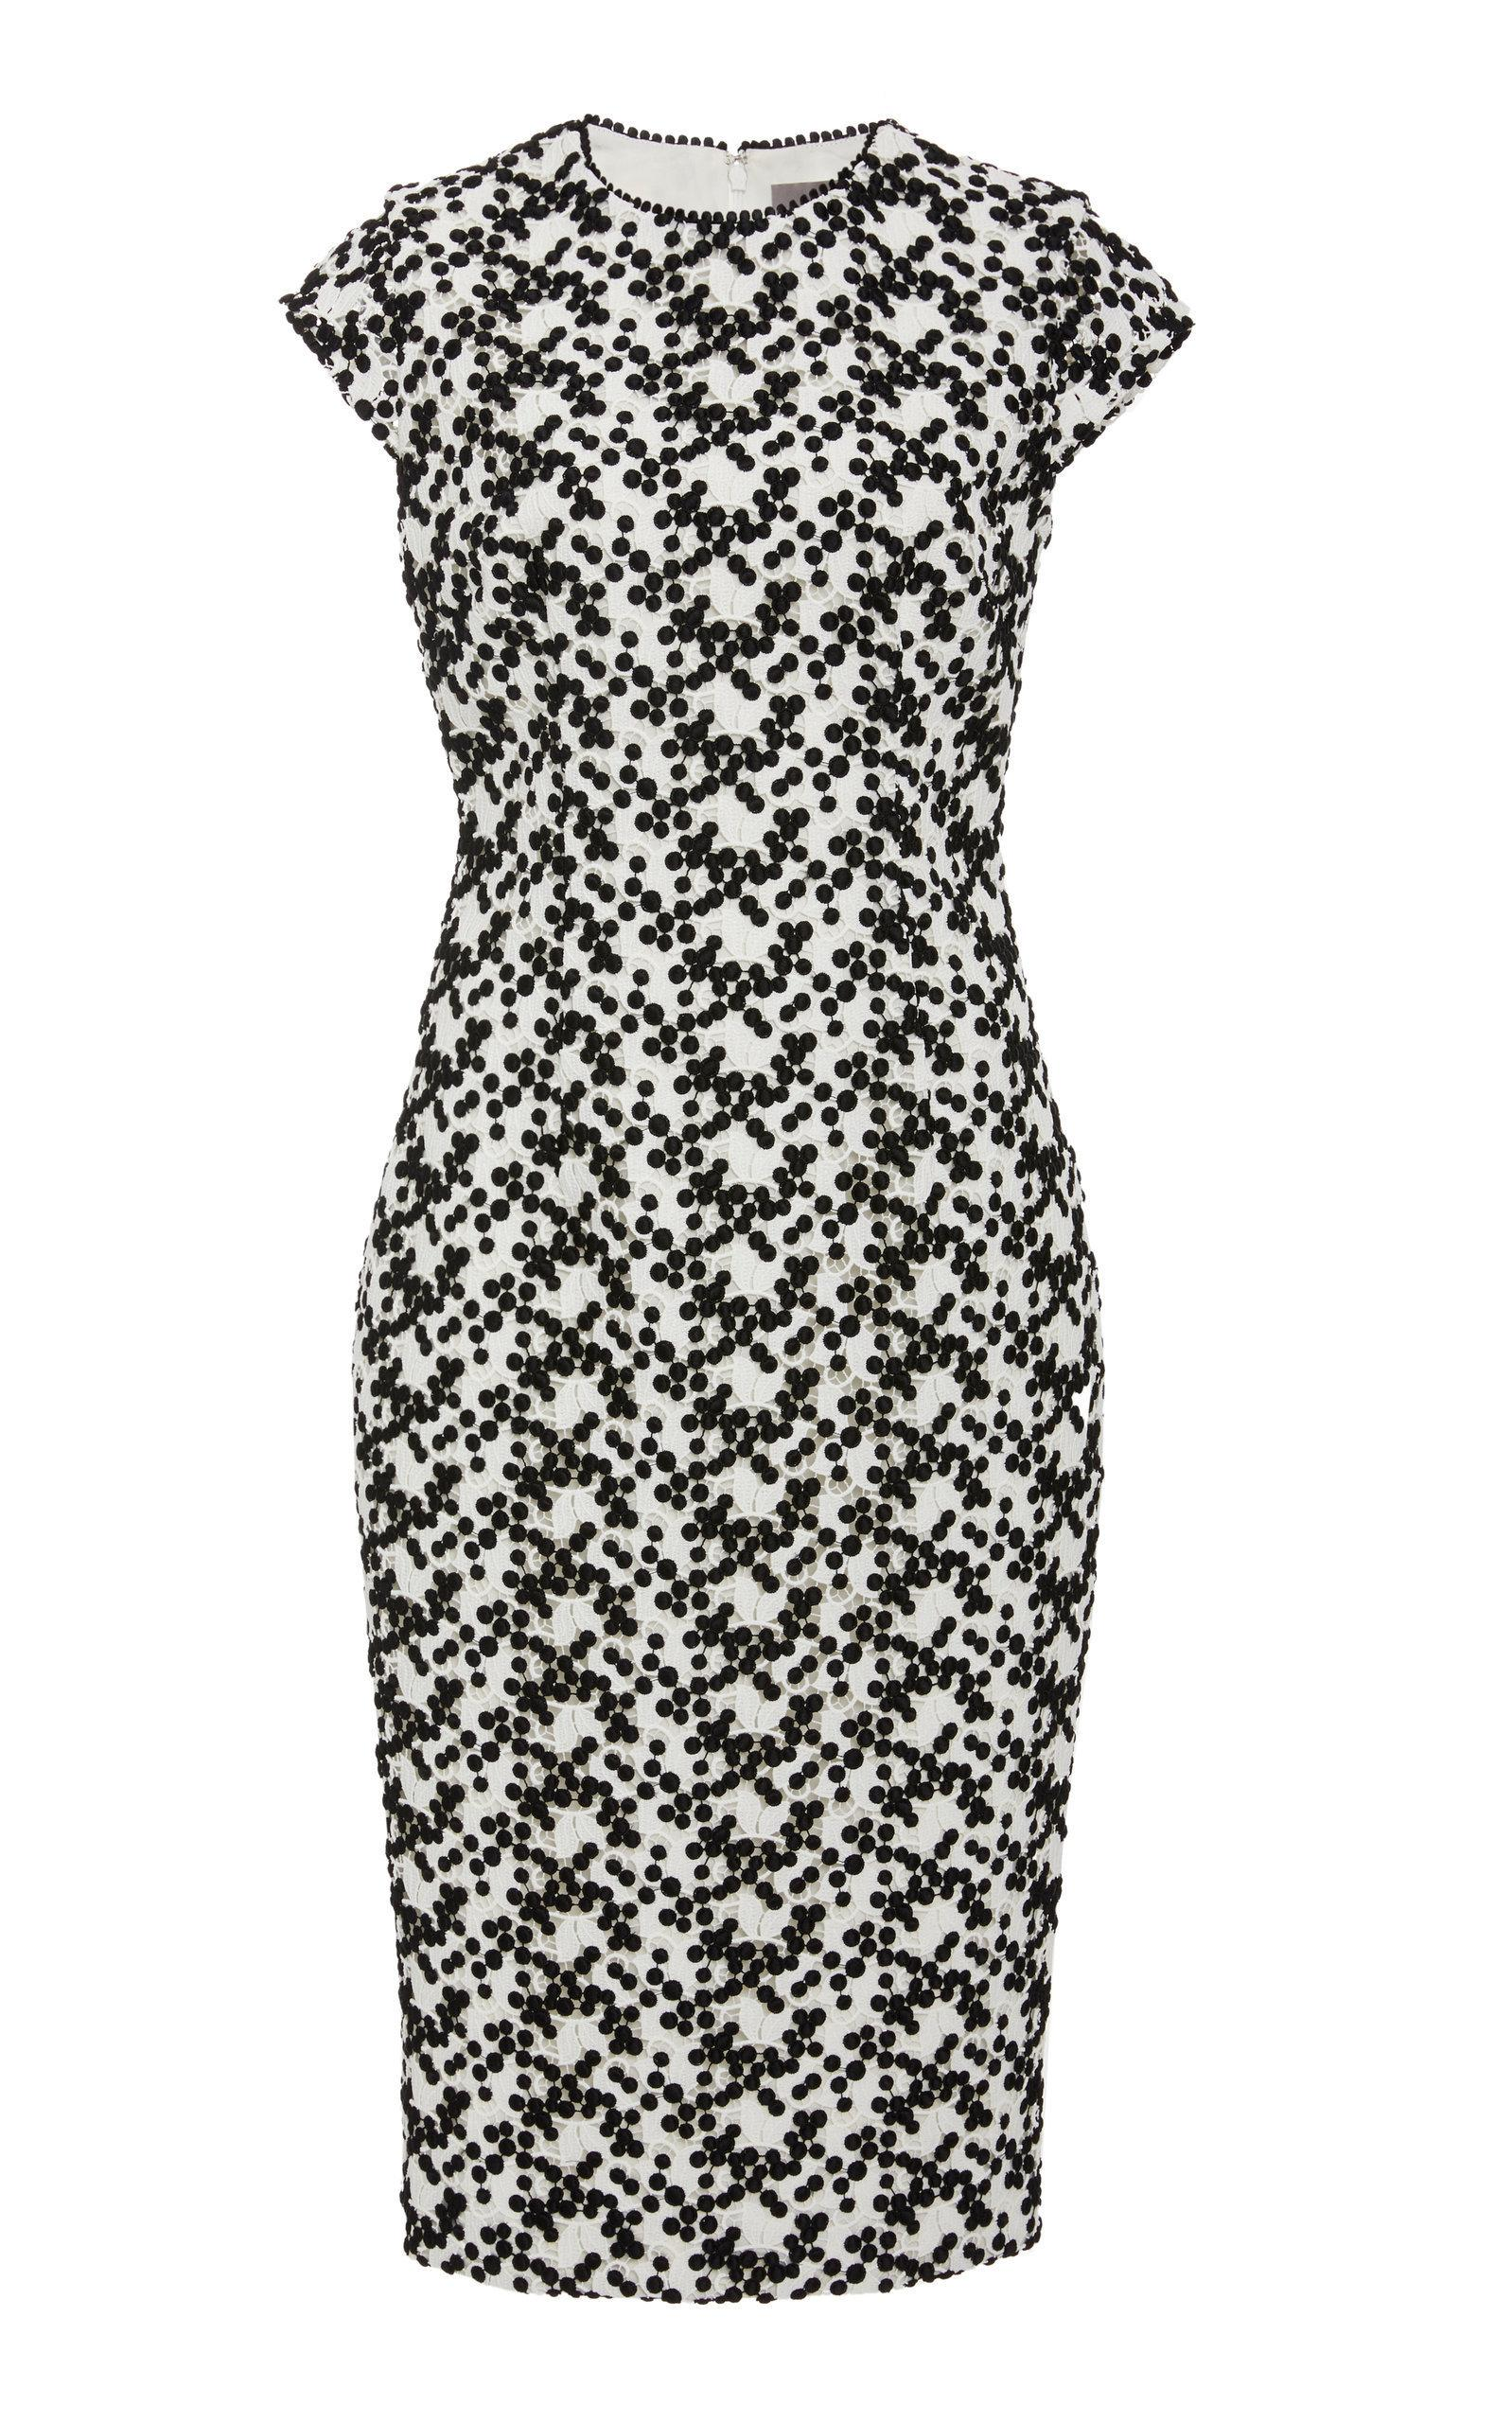 8ebd75fd Lela Rose Cap-Sleeve Dotted Floral-Lace Fitted Sheath Dress In Black/White